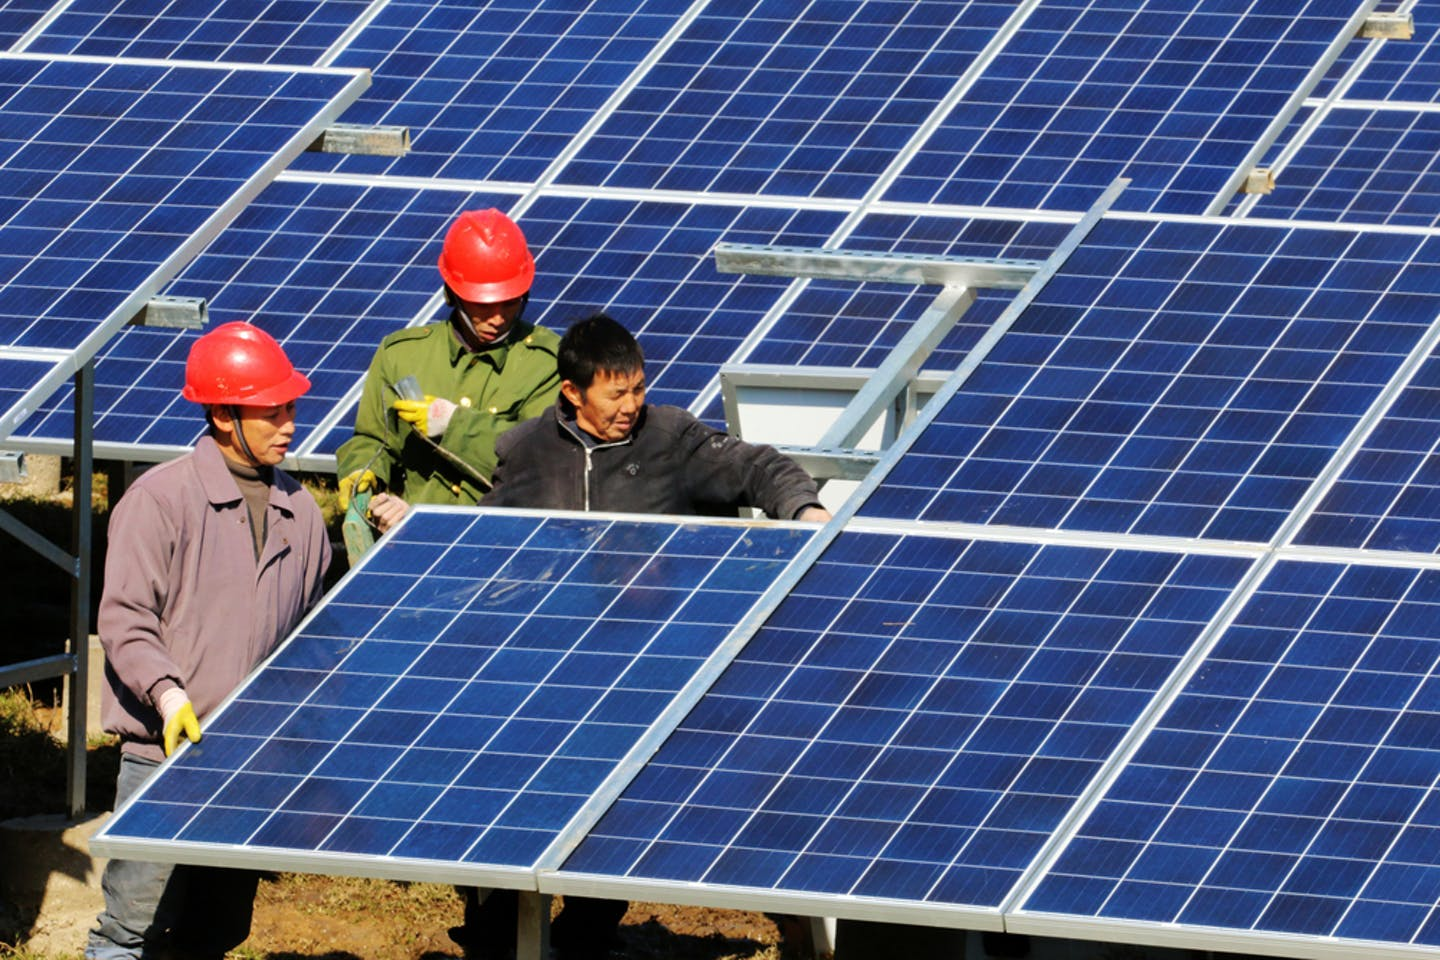 Chinese workers install solar panels